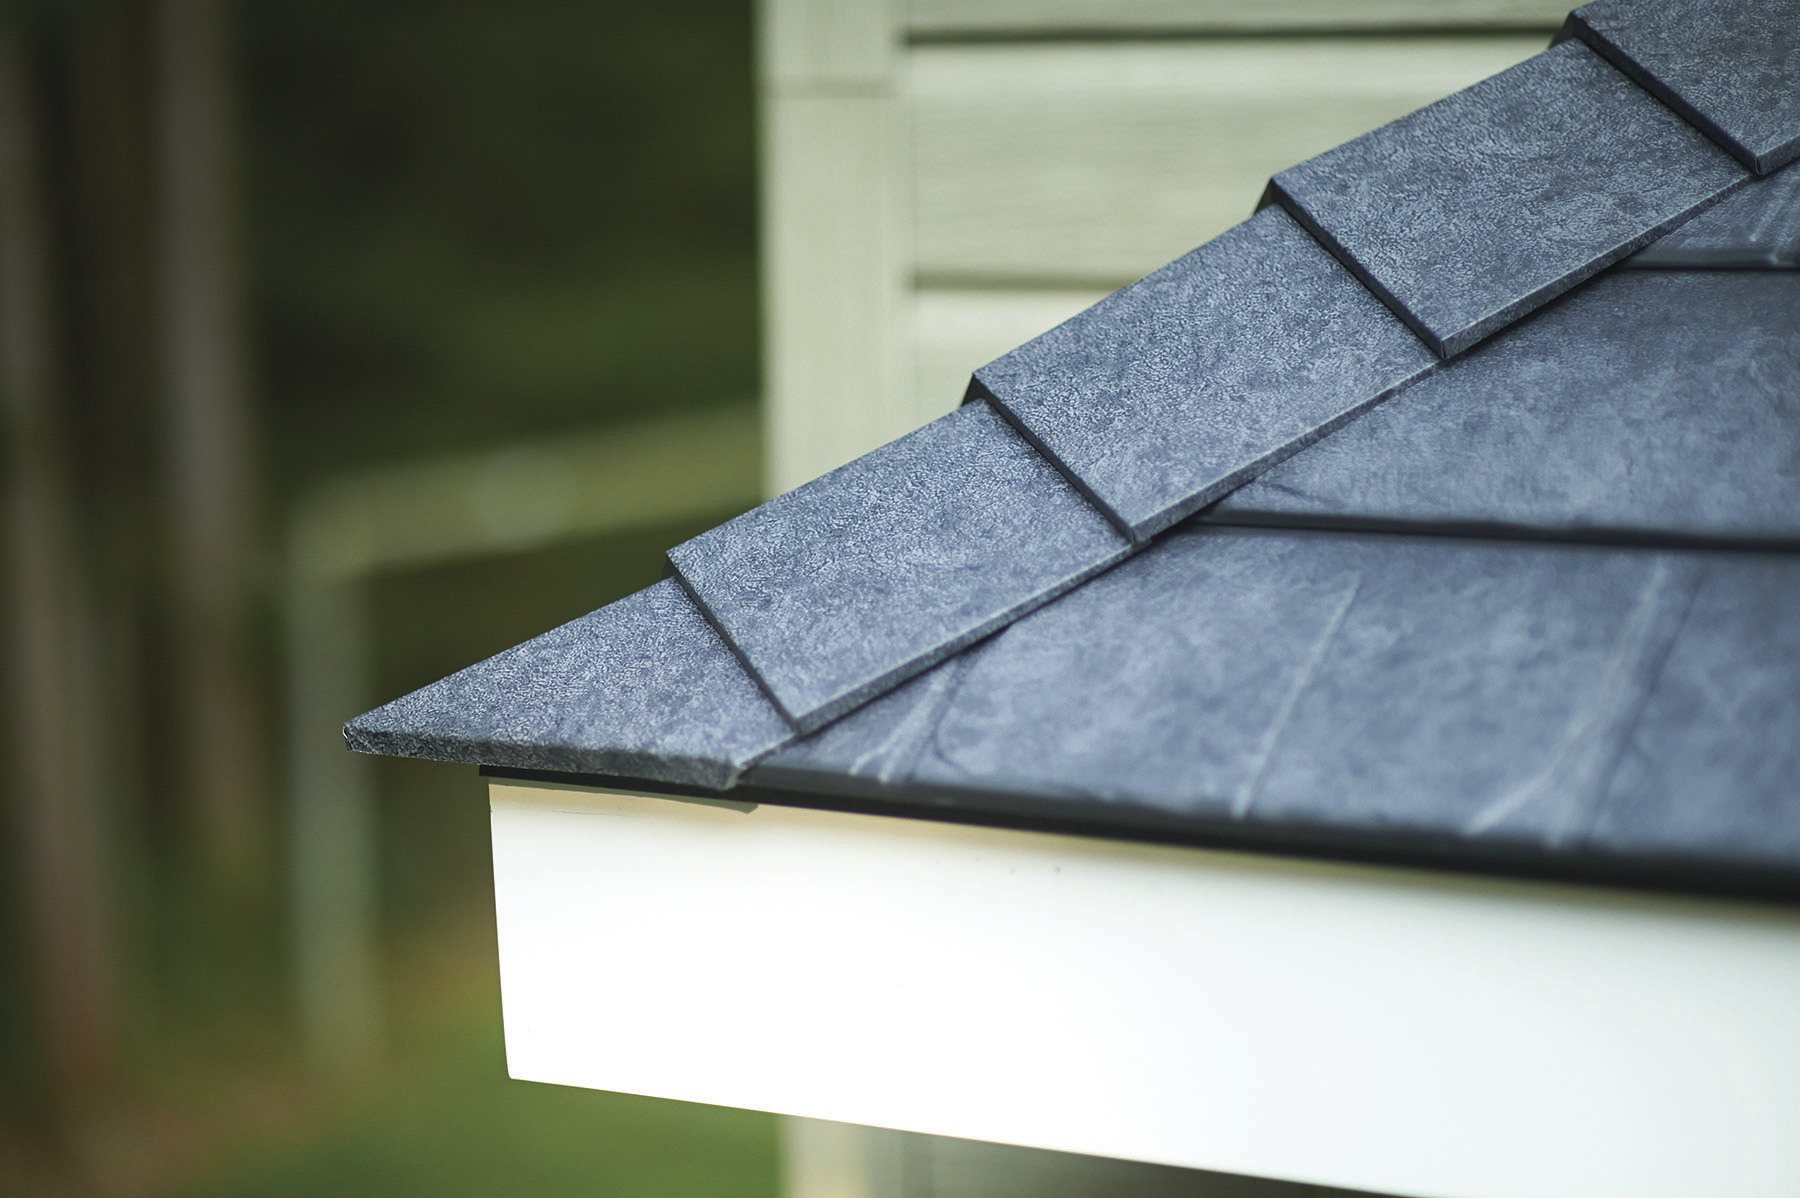 Matterhorn metal roofing, Slate profile, in the color Storm Slate